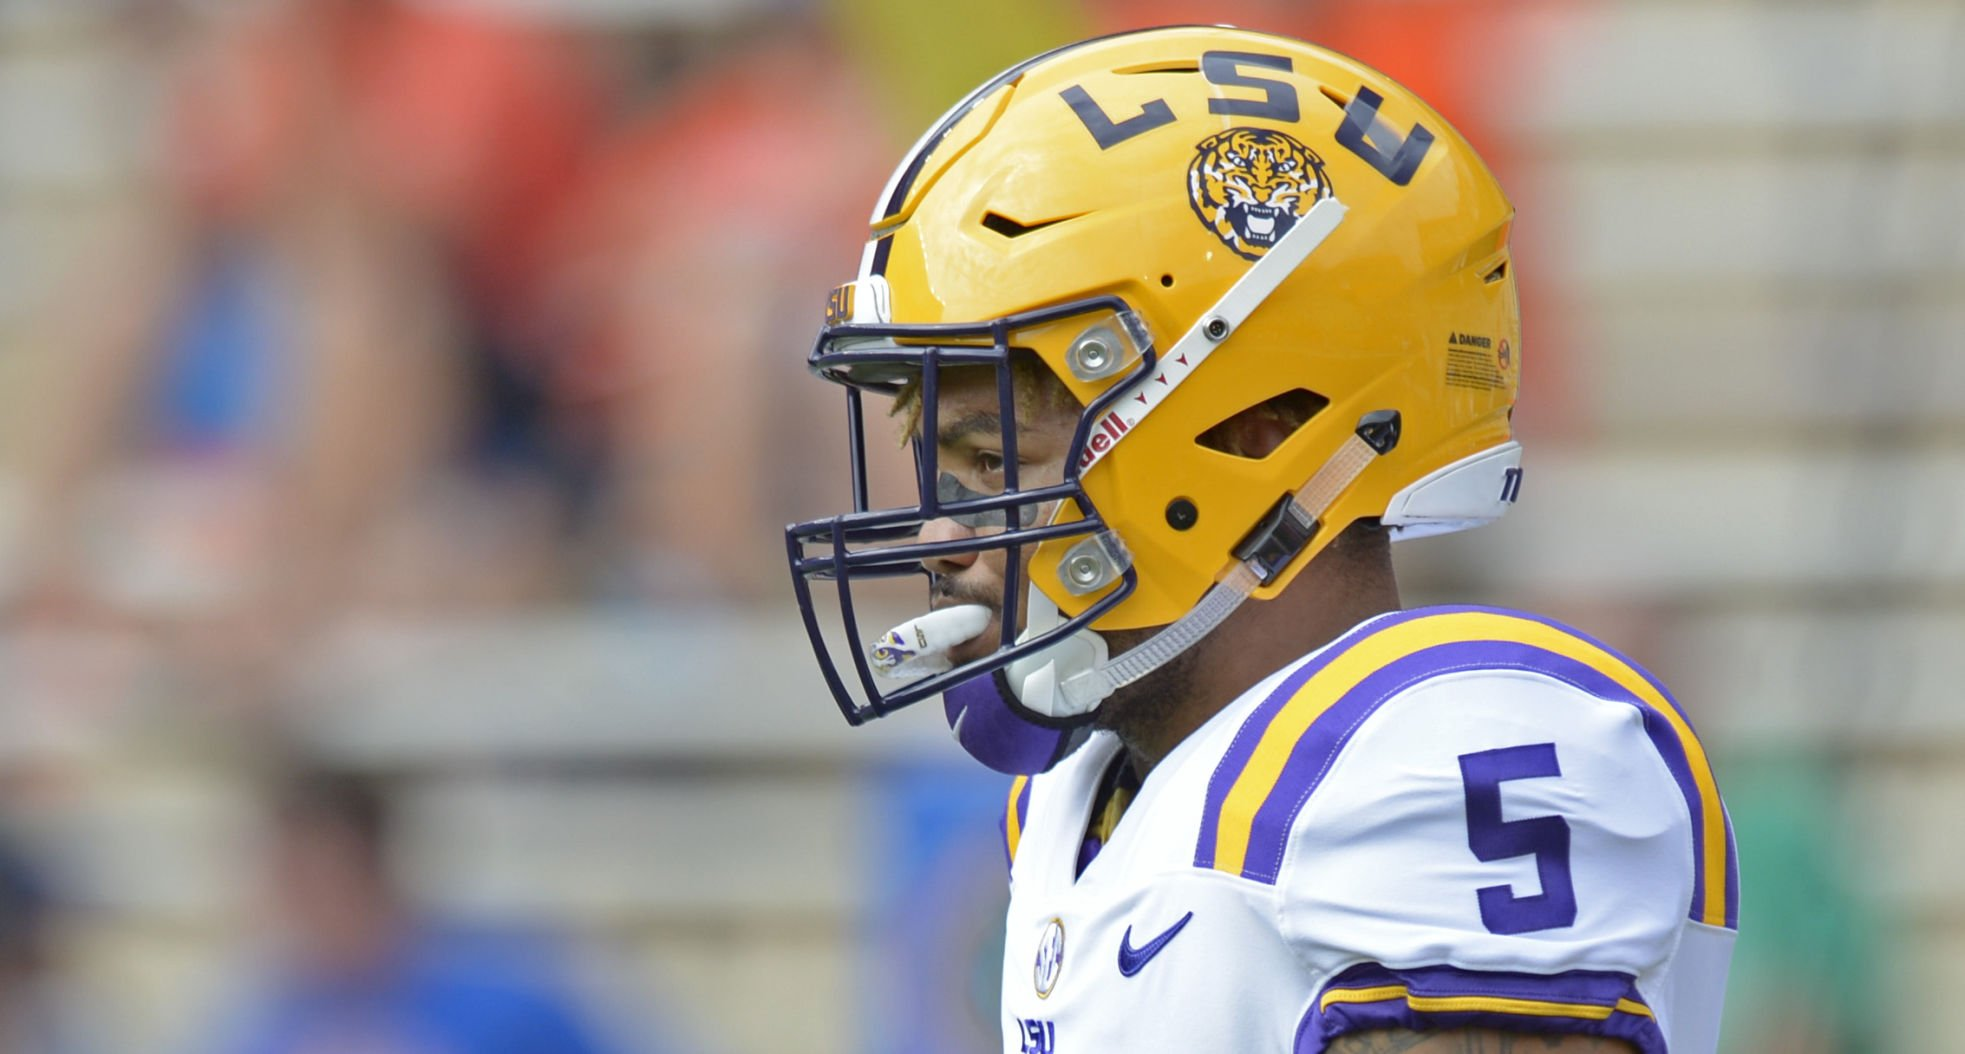 LSU bounces back with win at Florida, 17-16